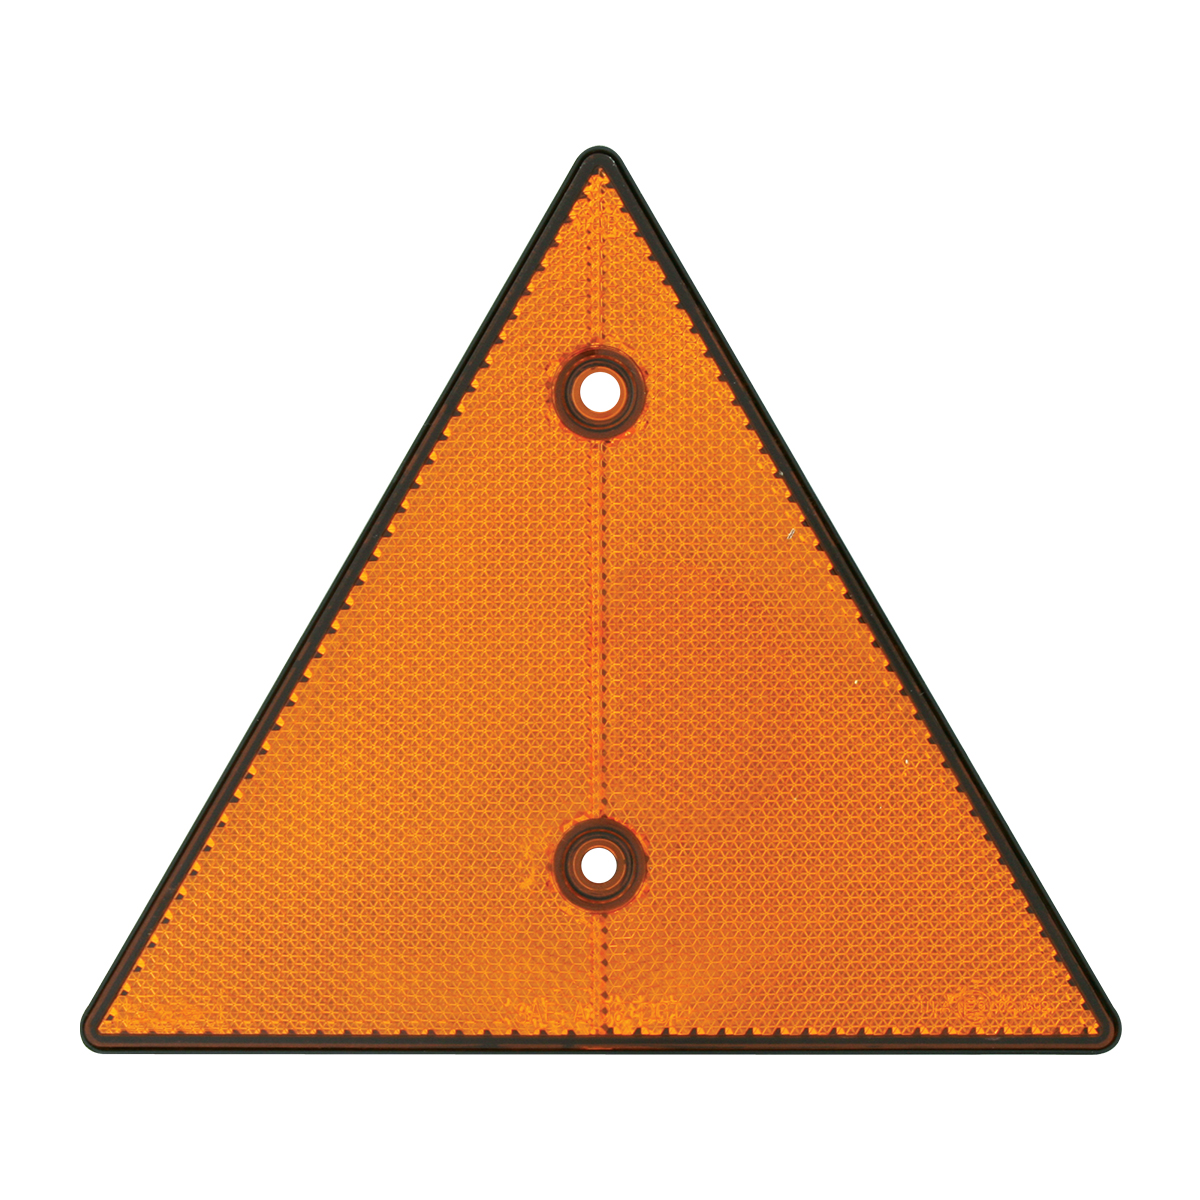 6 Quot Triangle Warning Reflector W 2 Mounting Holes Grand